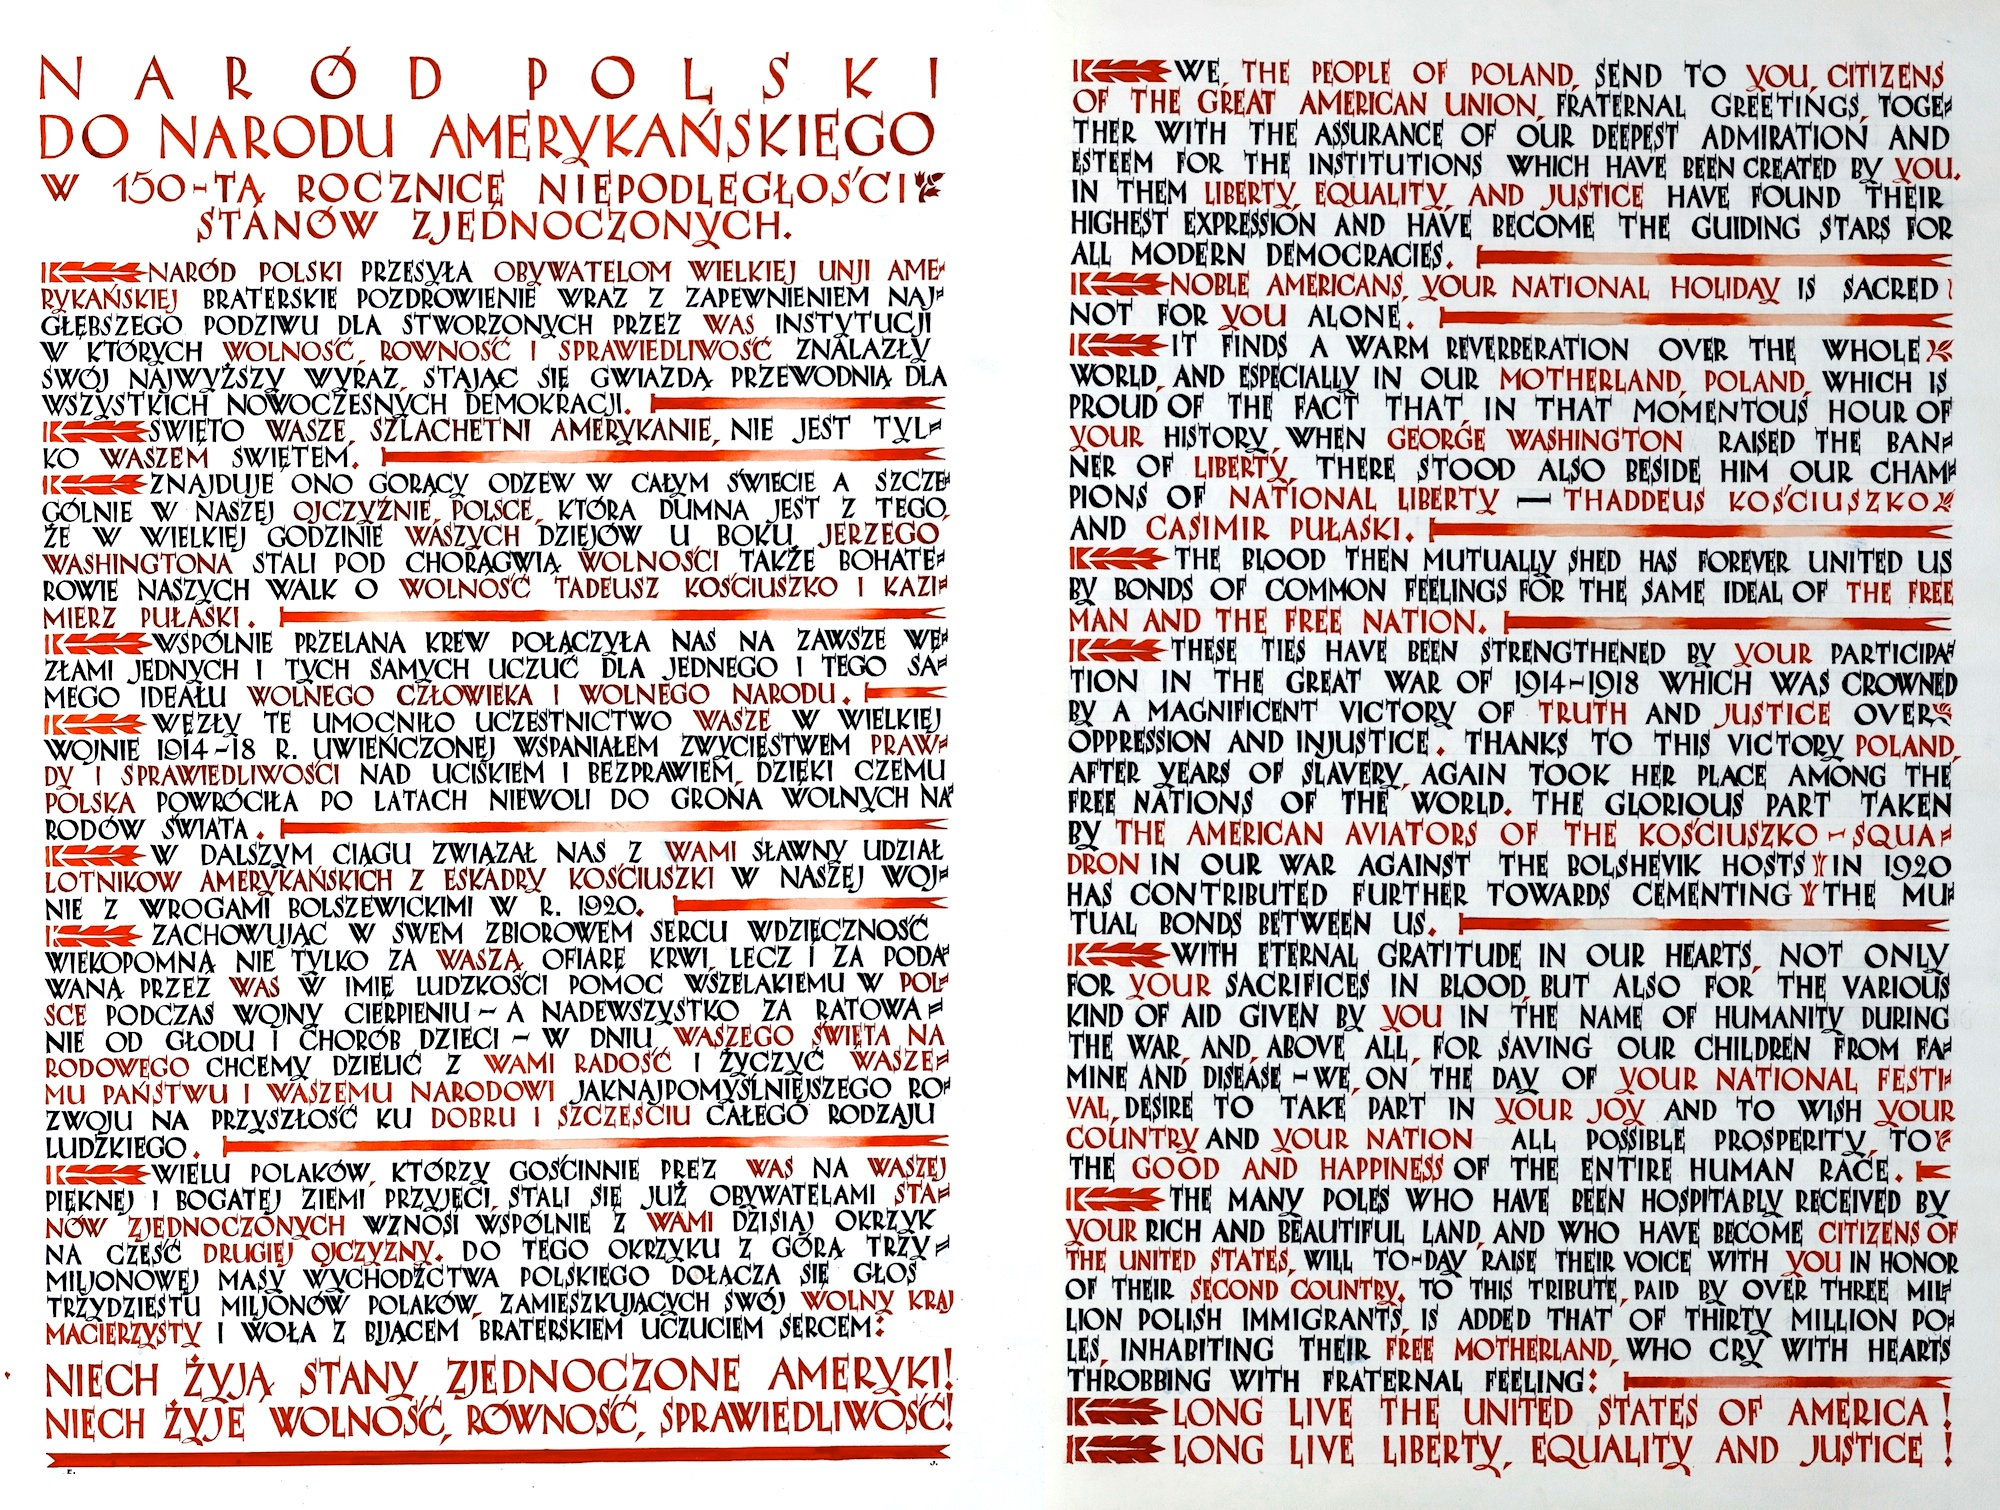 1926 Polish Declarations Of Friendship With The United States